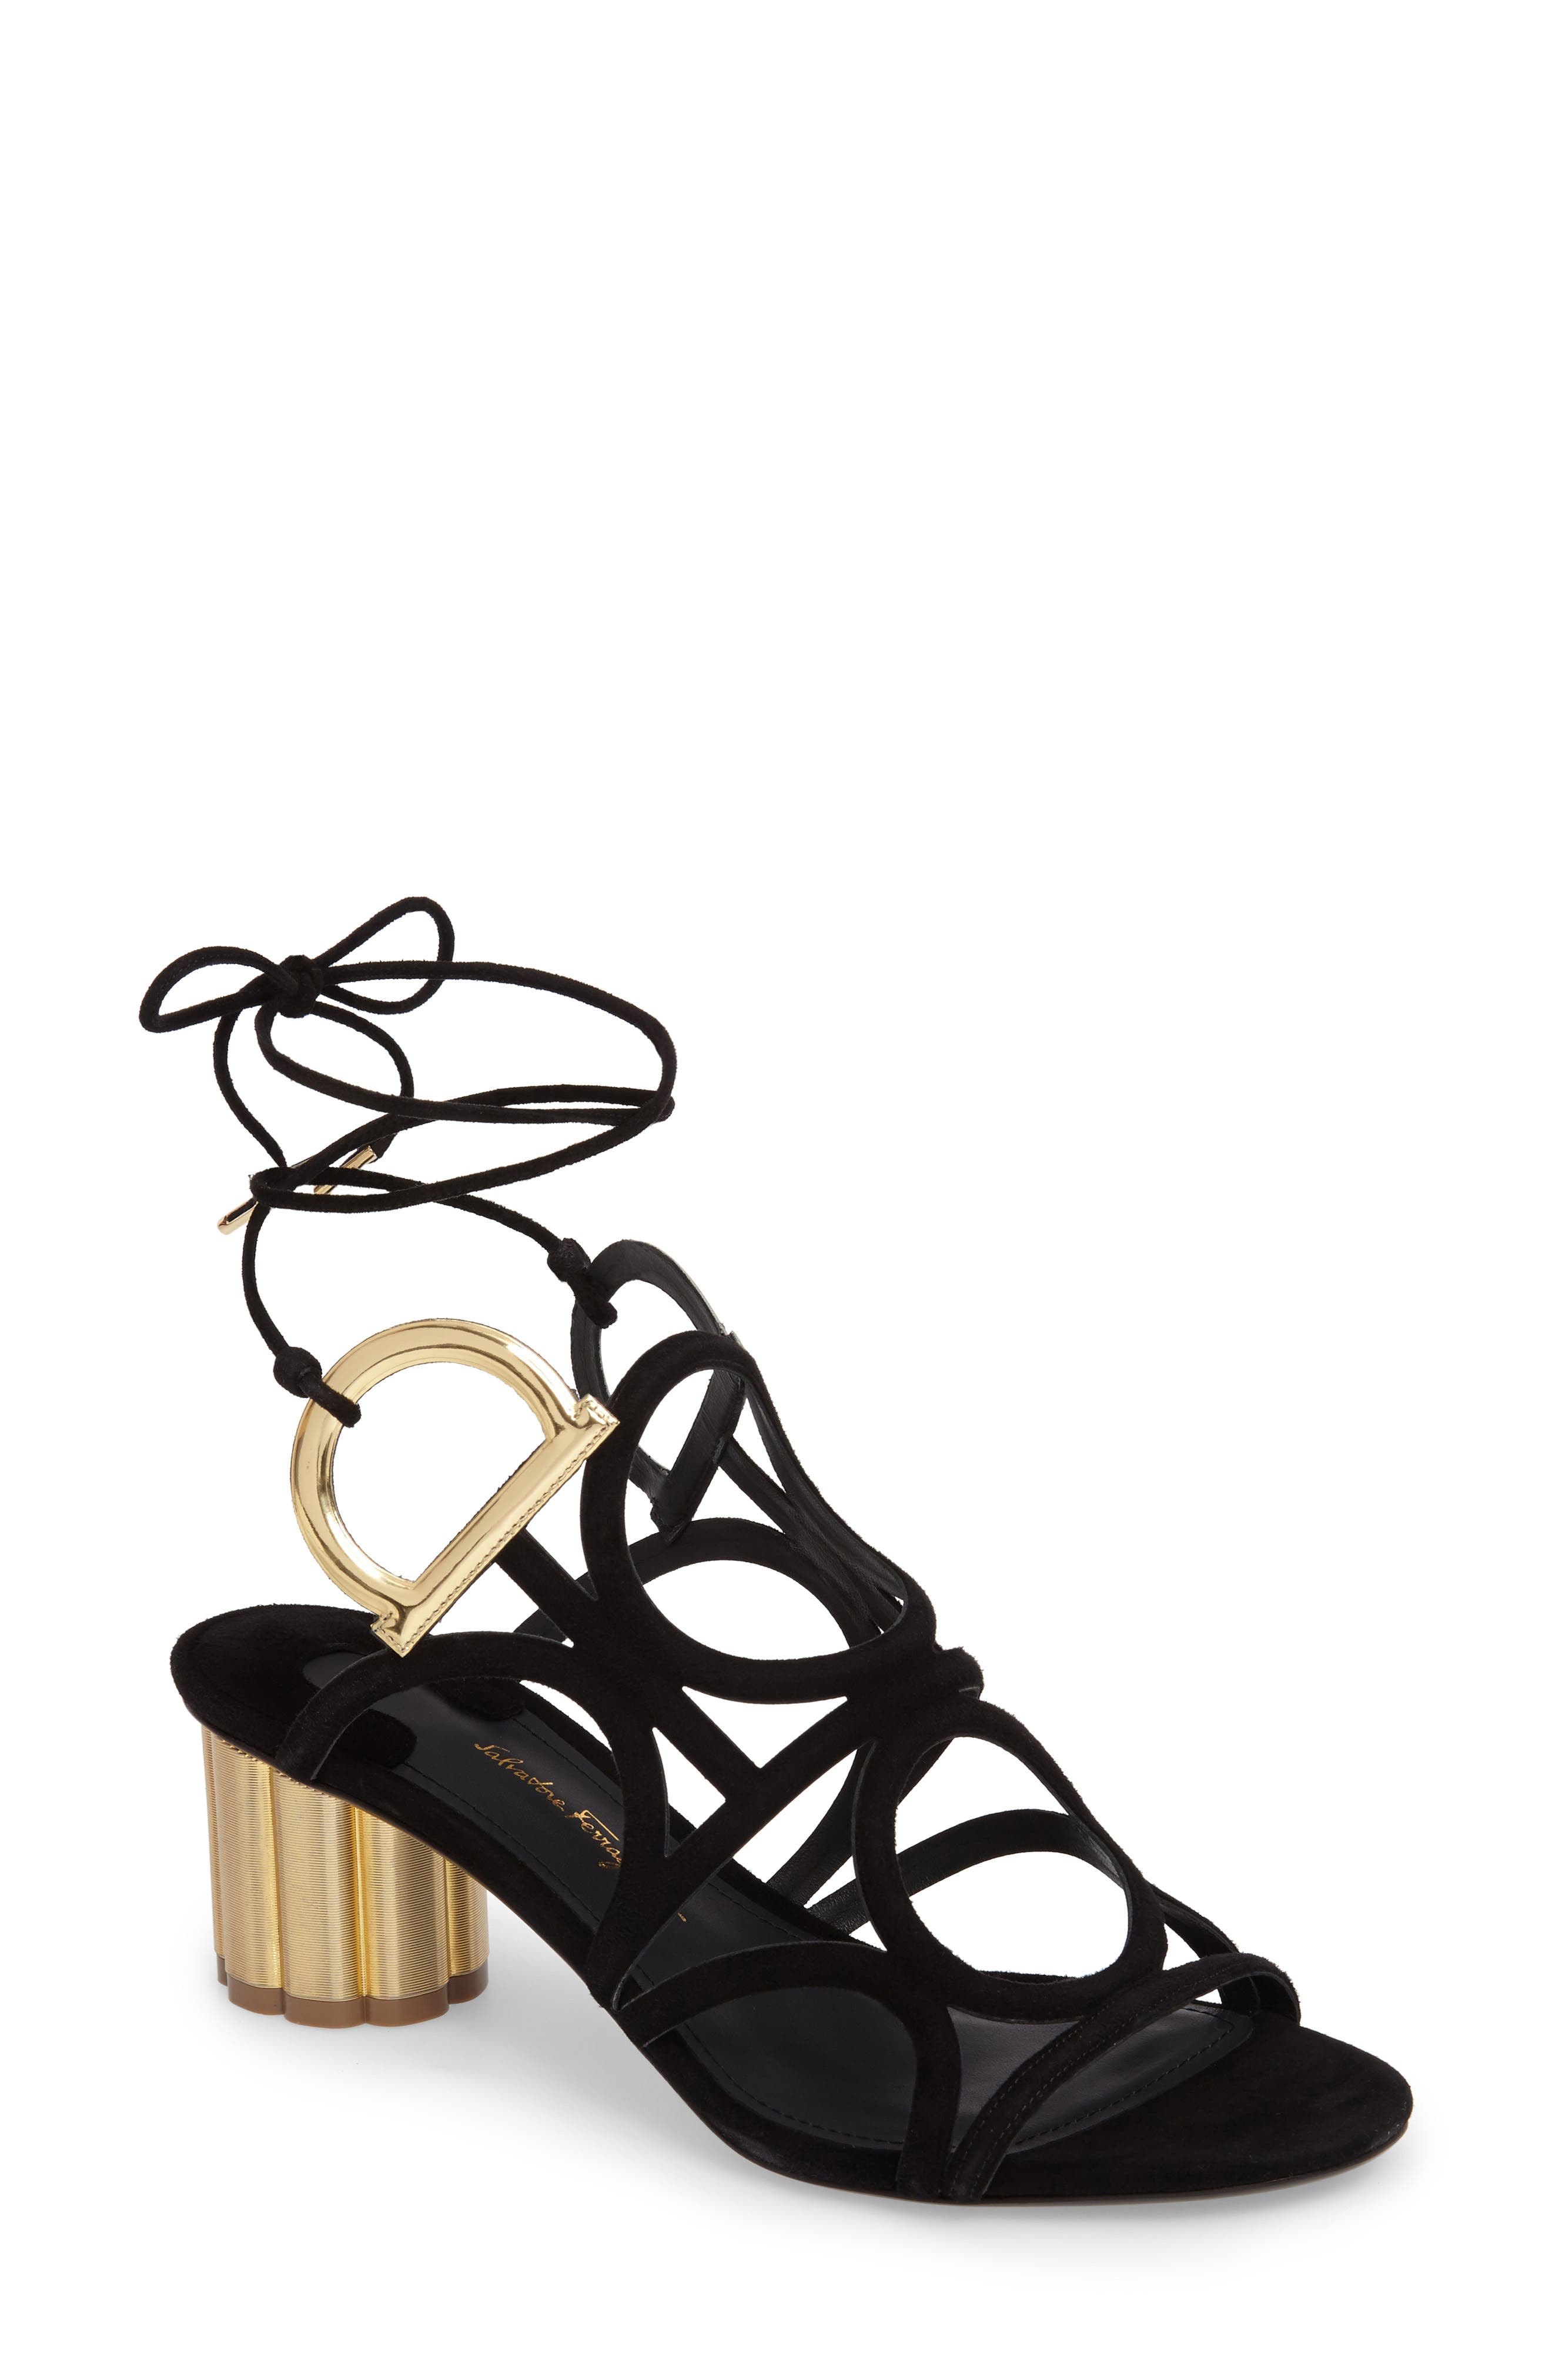 Salvatore Ferragamo Strappy Block Heel Sandal (Women)